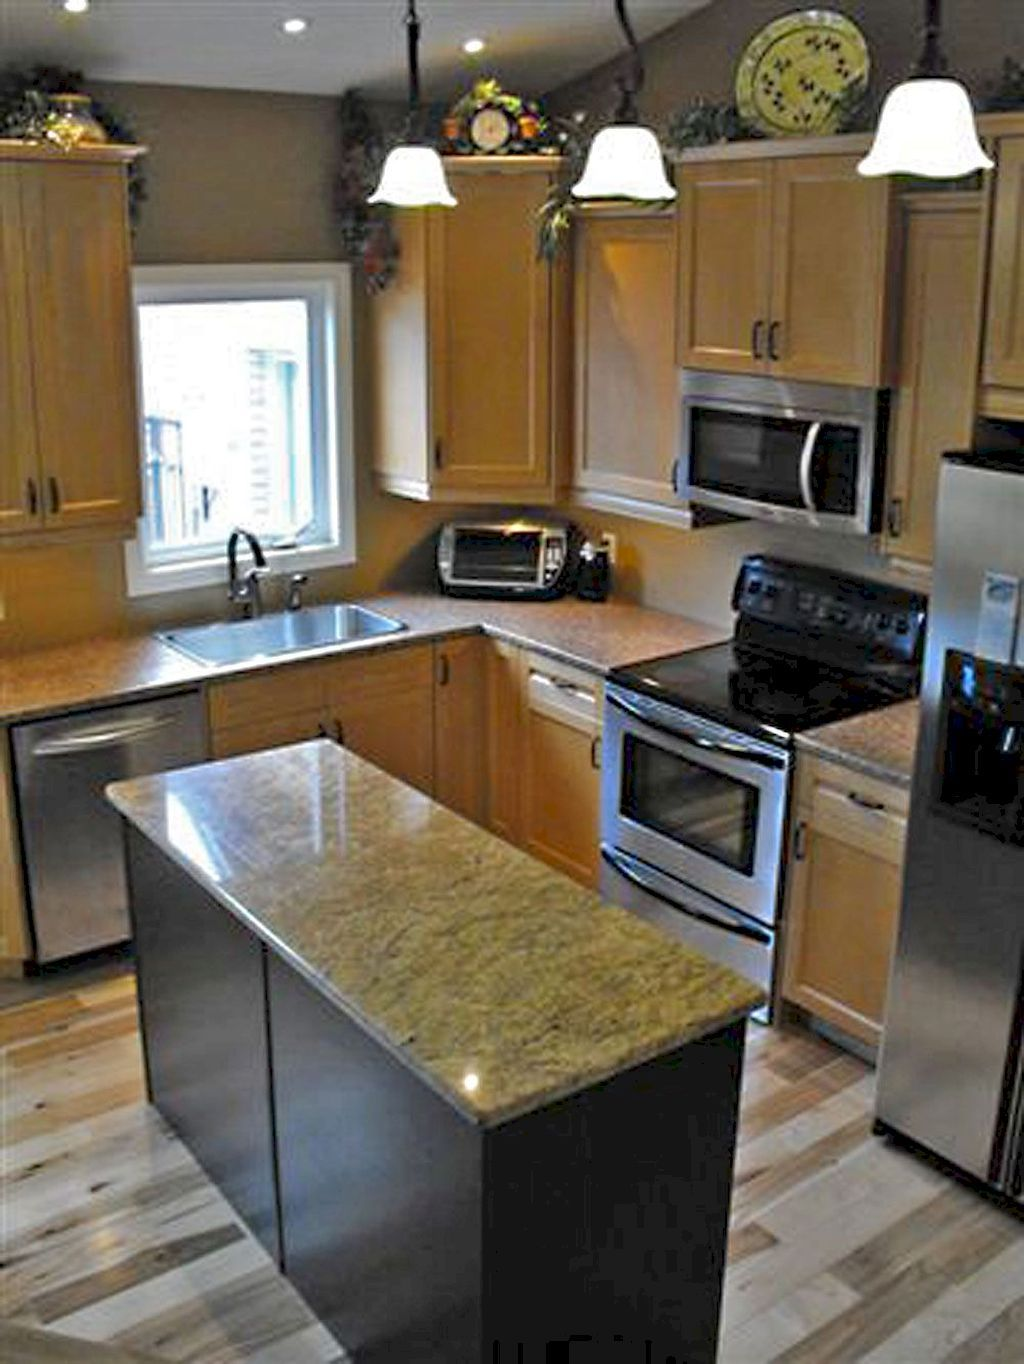 Small Kitchen Plan And Design For Small Room Home To Z Small Kitchen Plans Kitchen Remodel Small Kitchen Plans